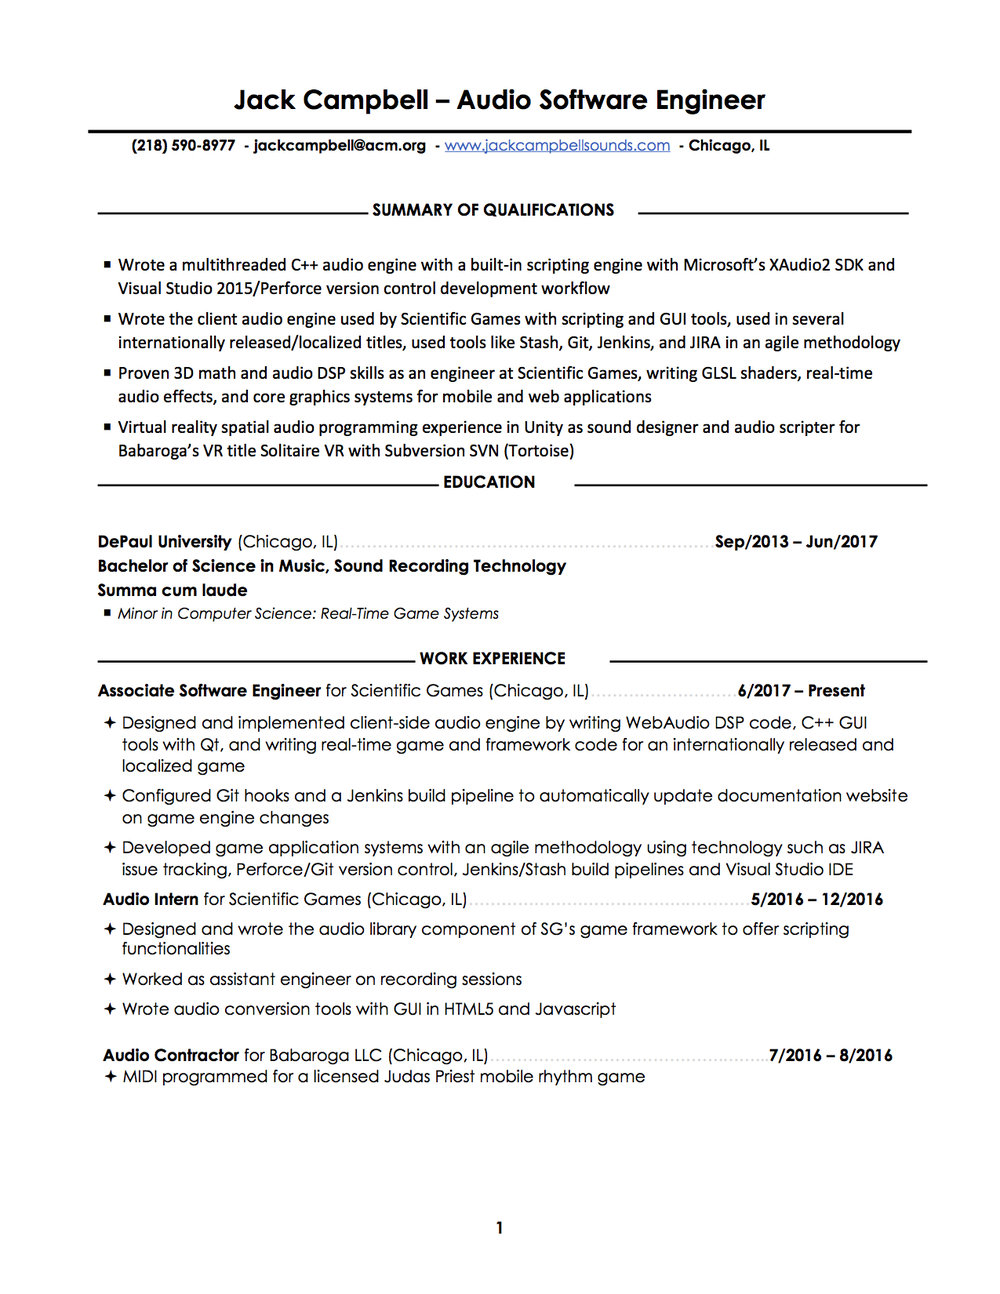 jcampbell_resume_audio_engineer (1).jpg